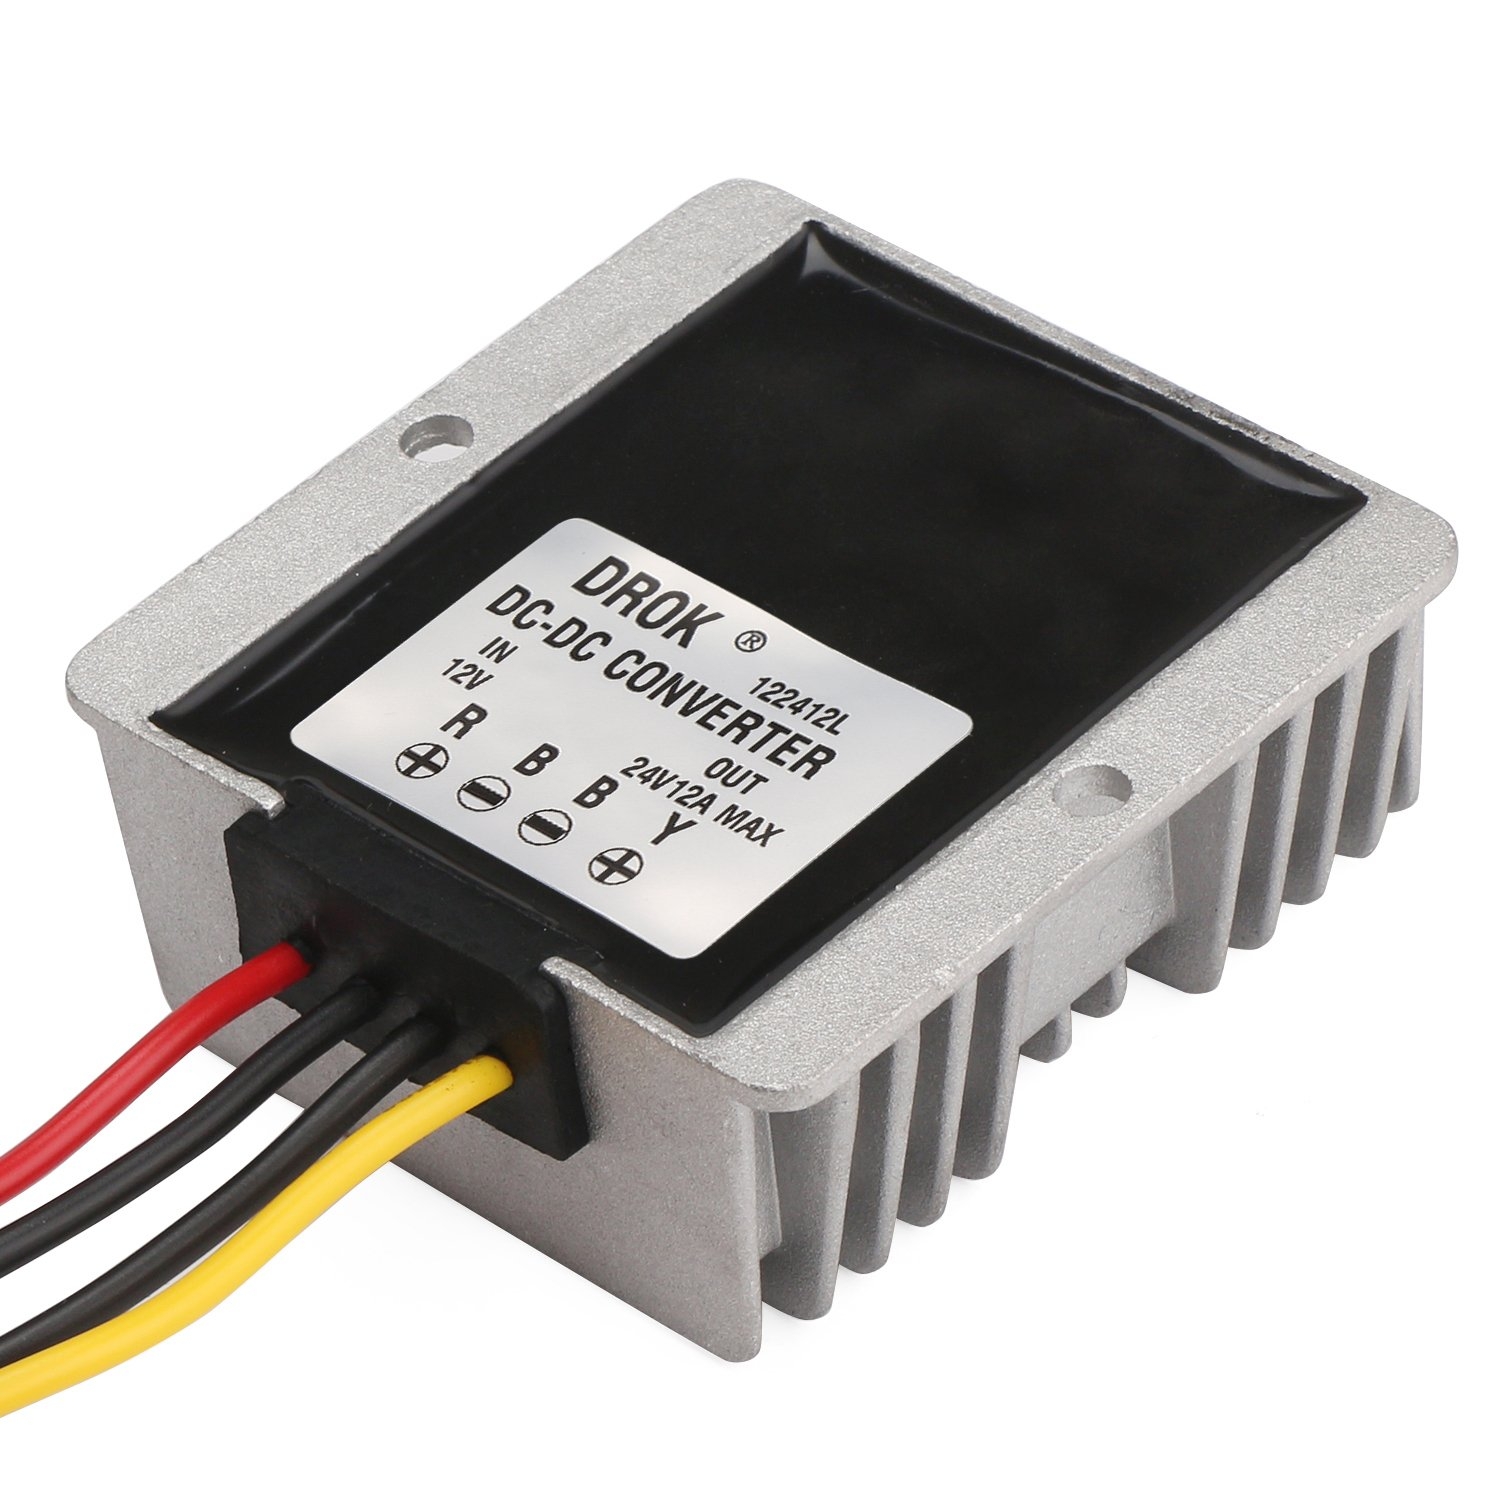 Drok Waterproof Dc Boost Converter 12v To 24v Dcdc Converters Power Content From Electronic Design Electronics